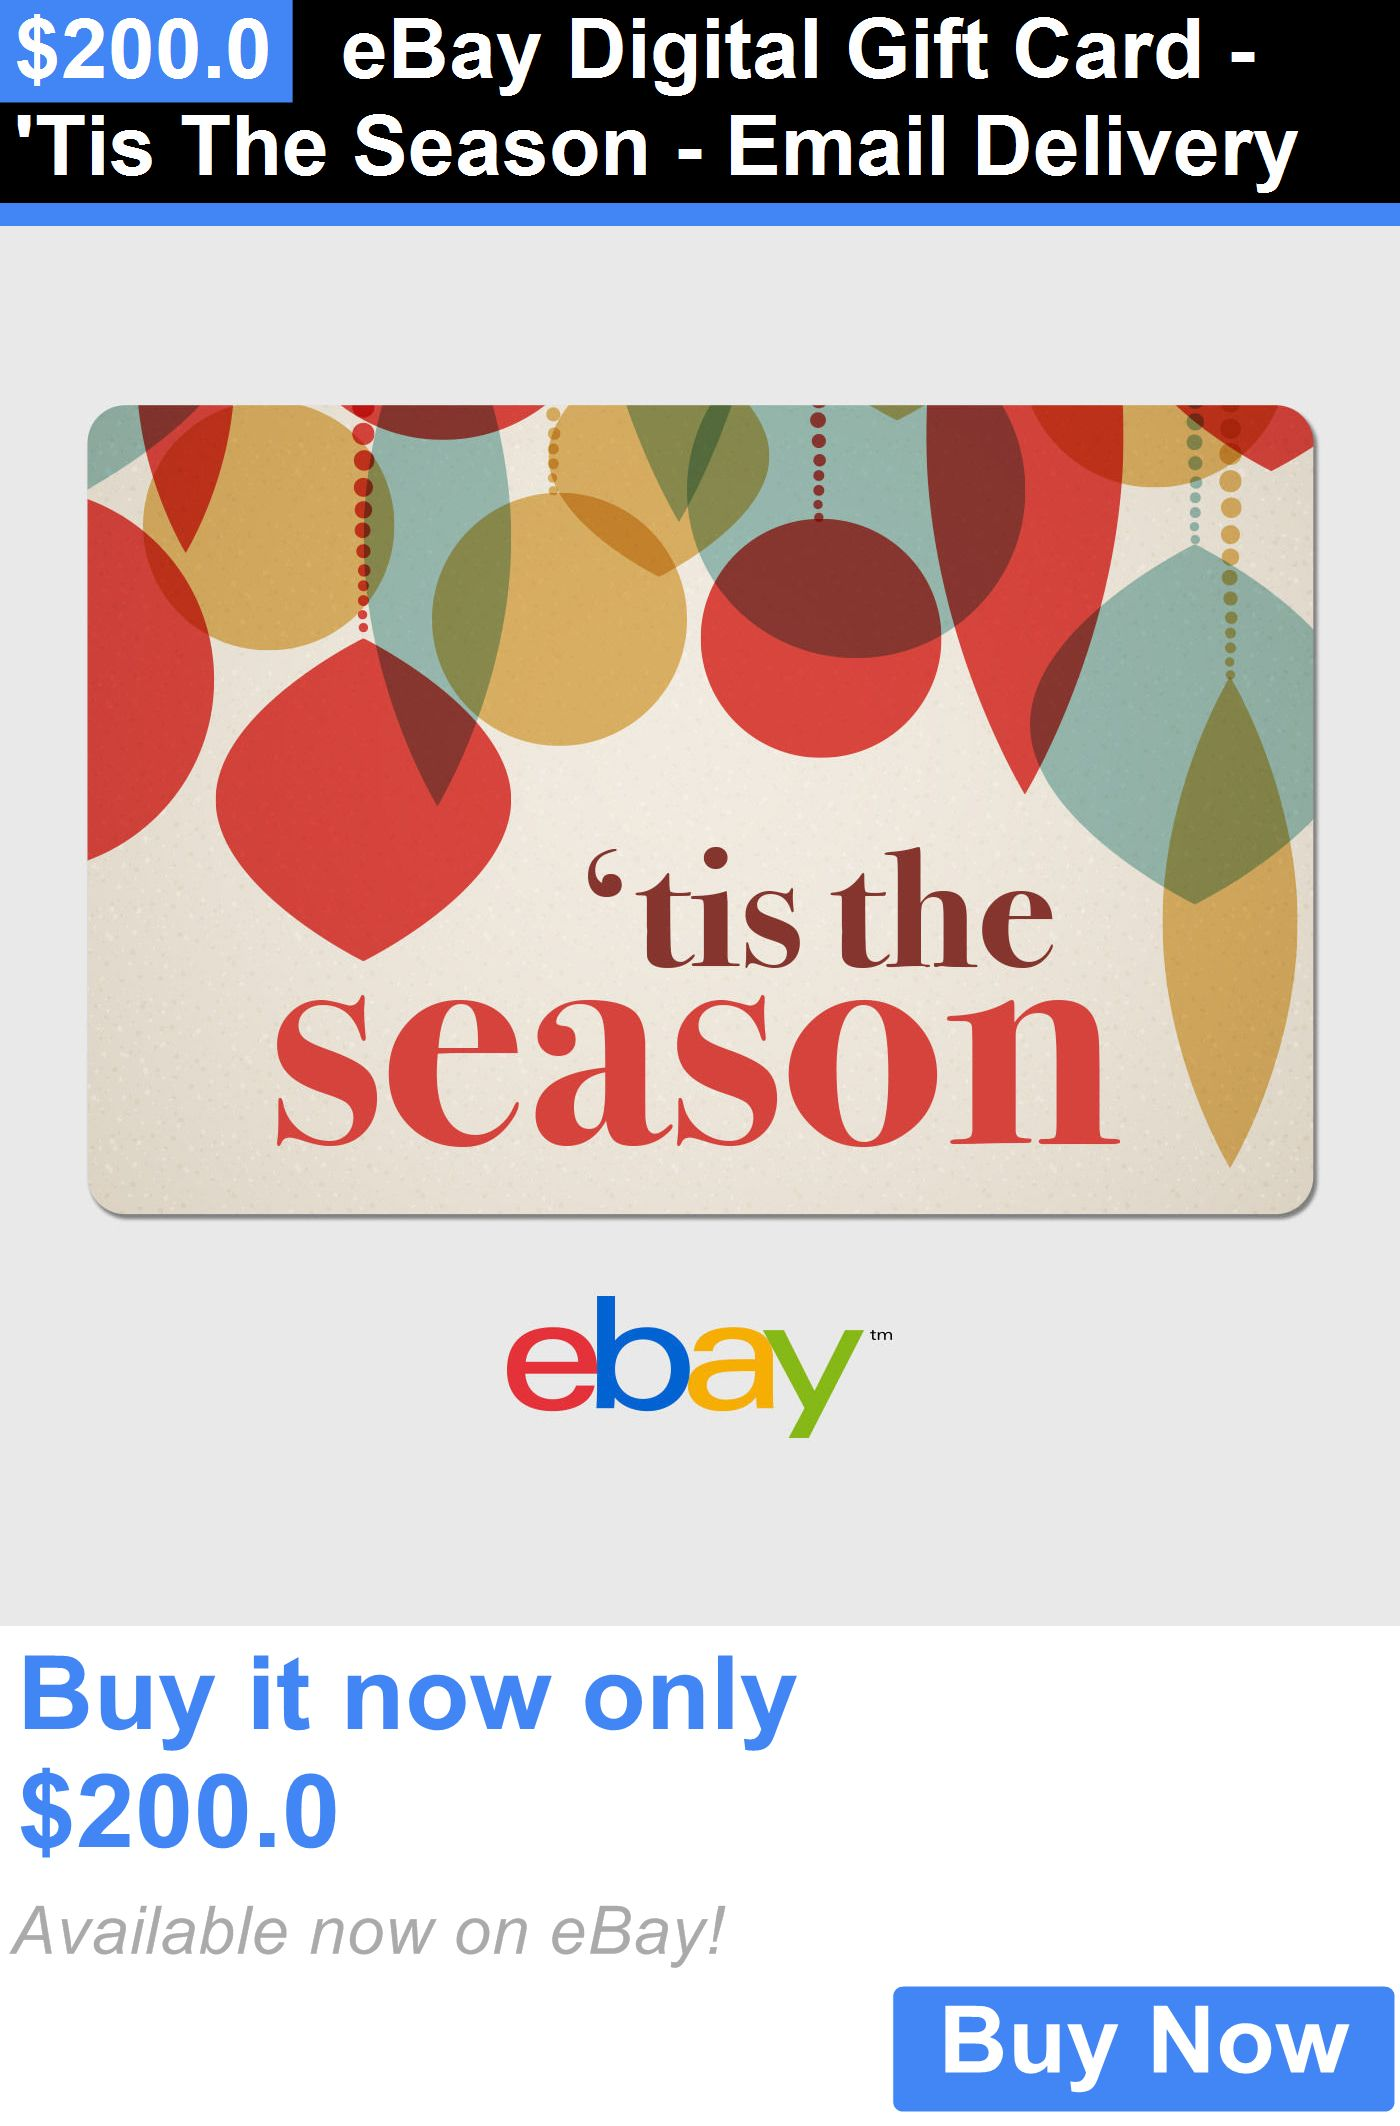 Gift Cards Ebay Digital Gift Card Tis The Season Email Delivery Buy It Now Only 200 0 Digital Gift Card Gift Card Cards